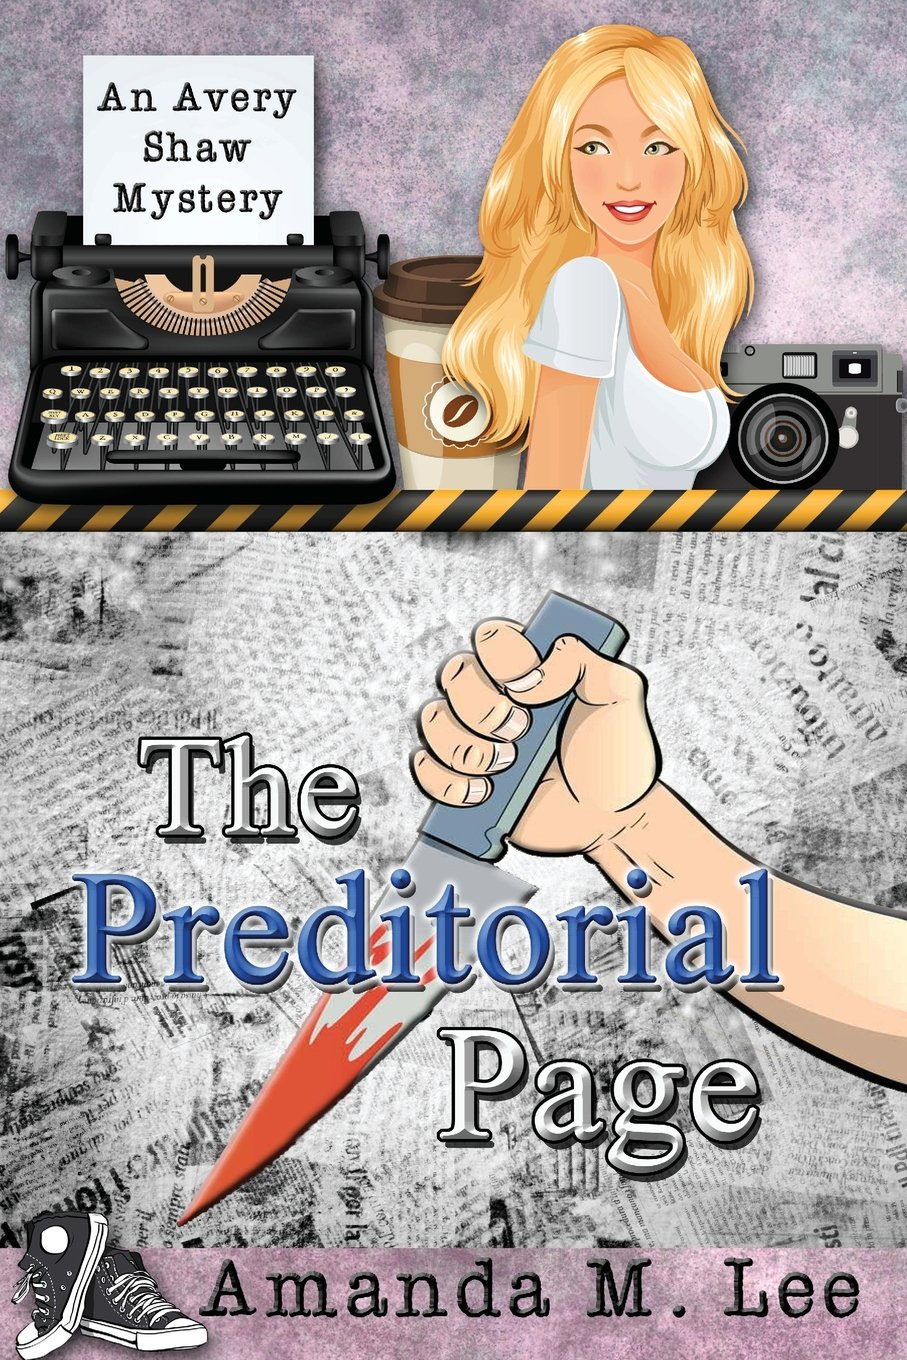 Download The Preditorial Page: An Avery Shaw Mystery (Volume 5) pdf